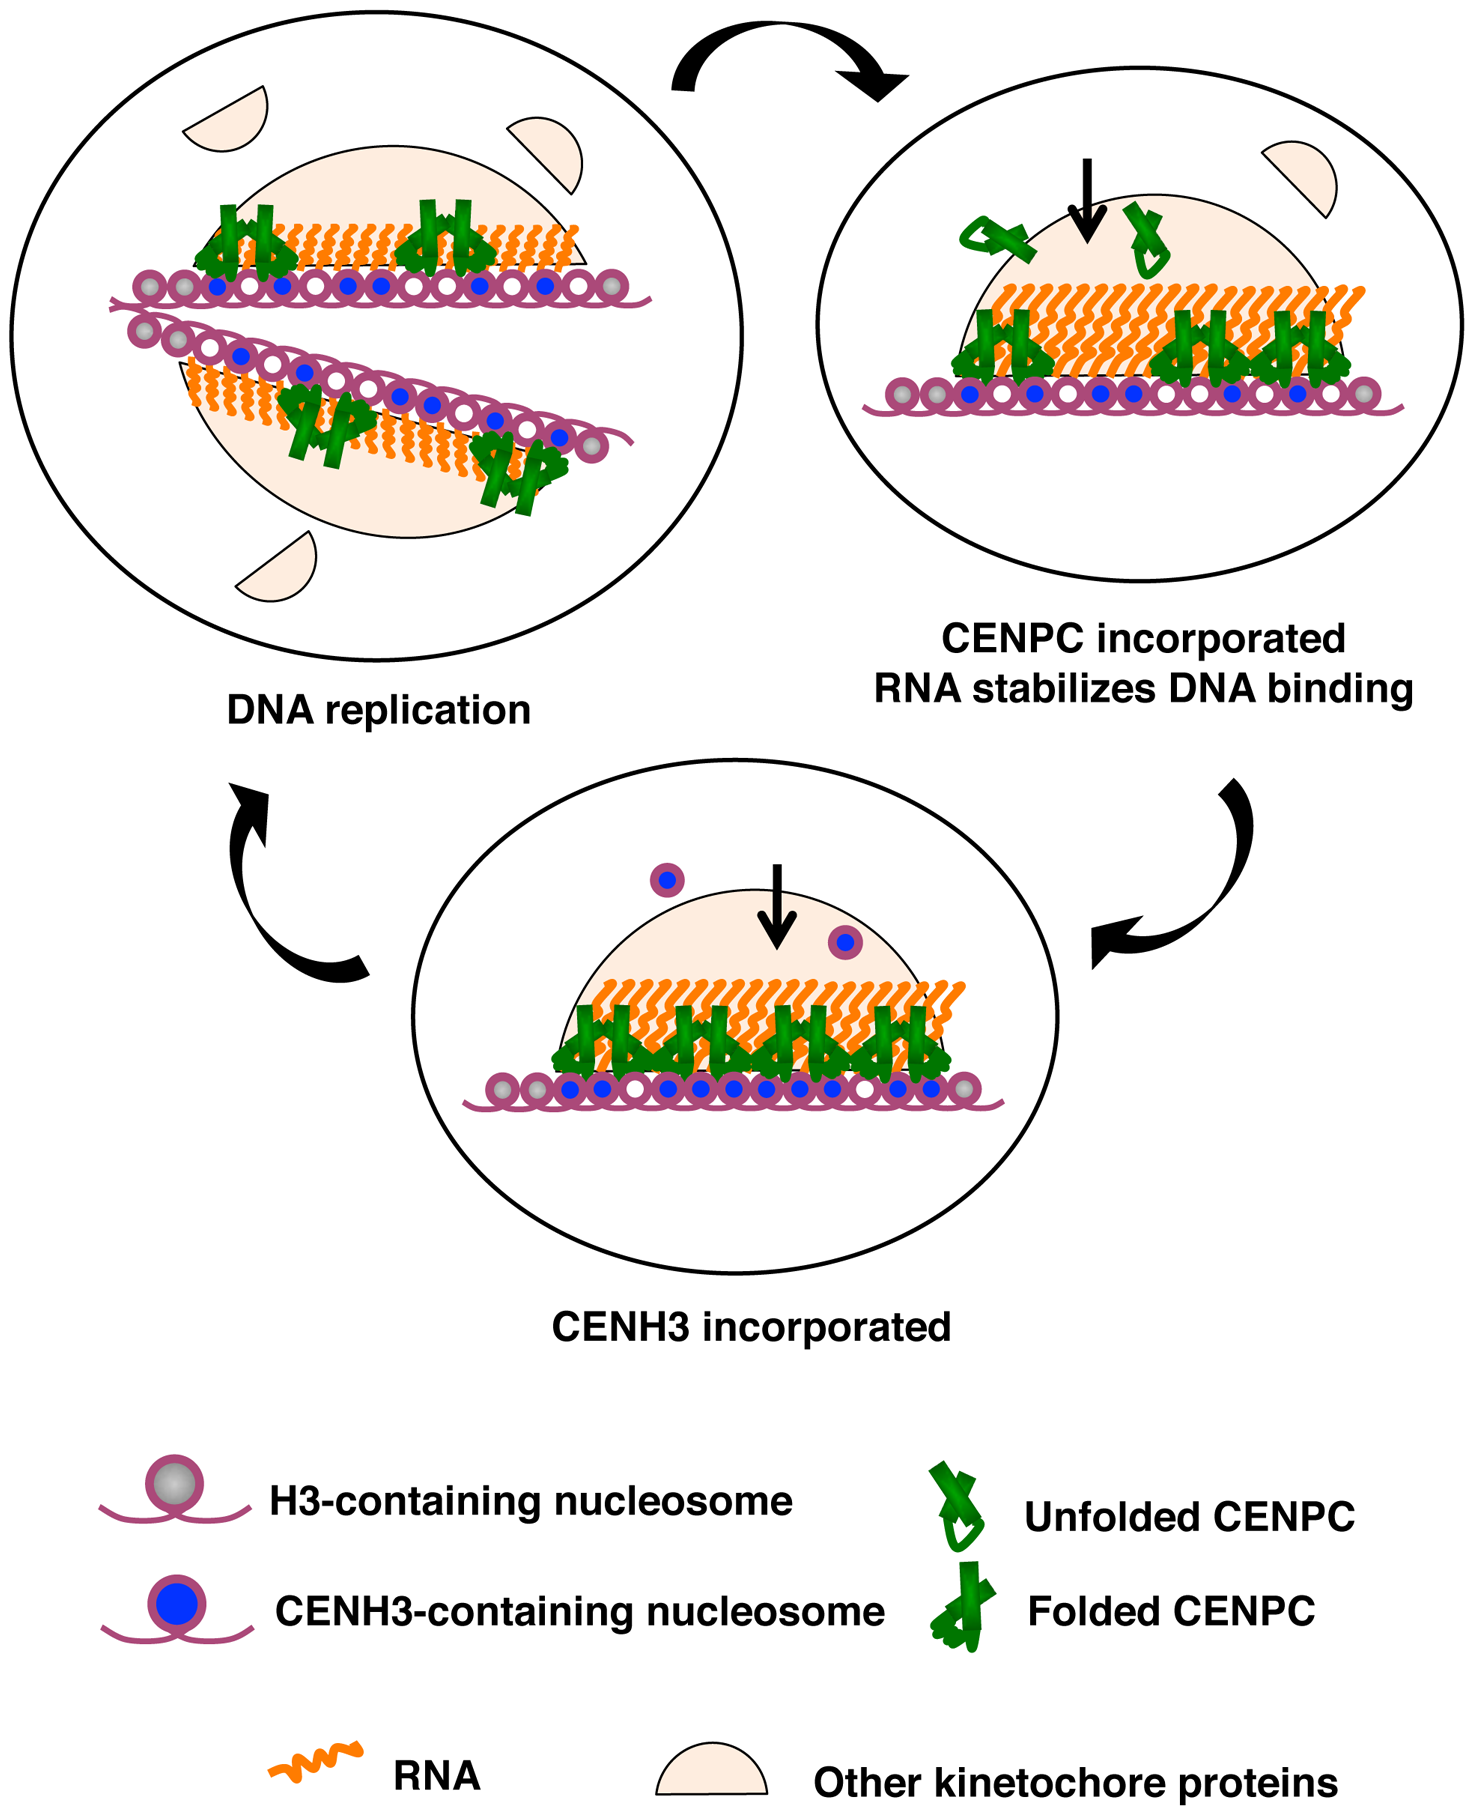 A model for how RNA facilitates the CENPC-DNA interaction.